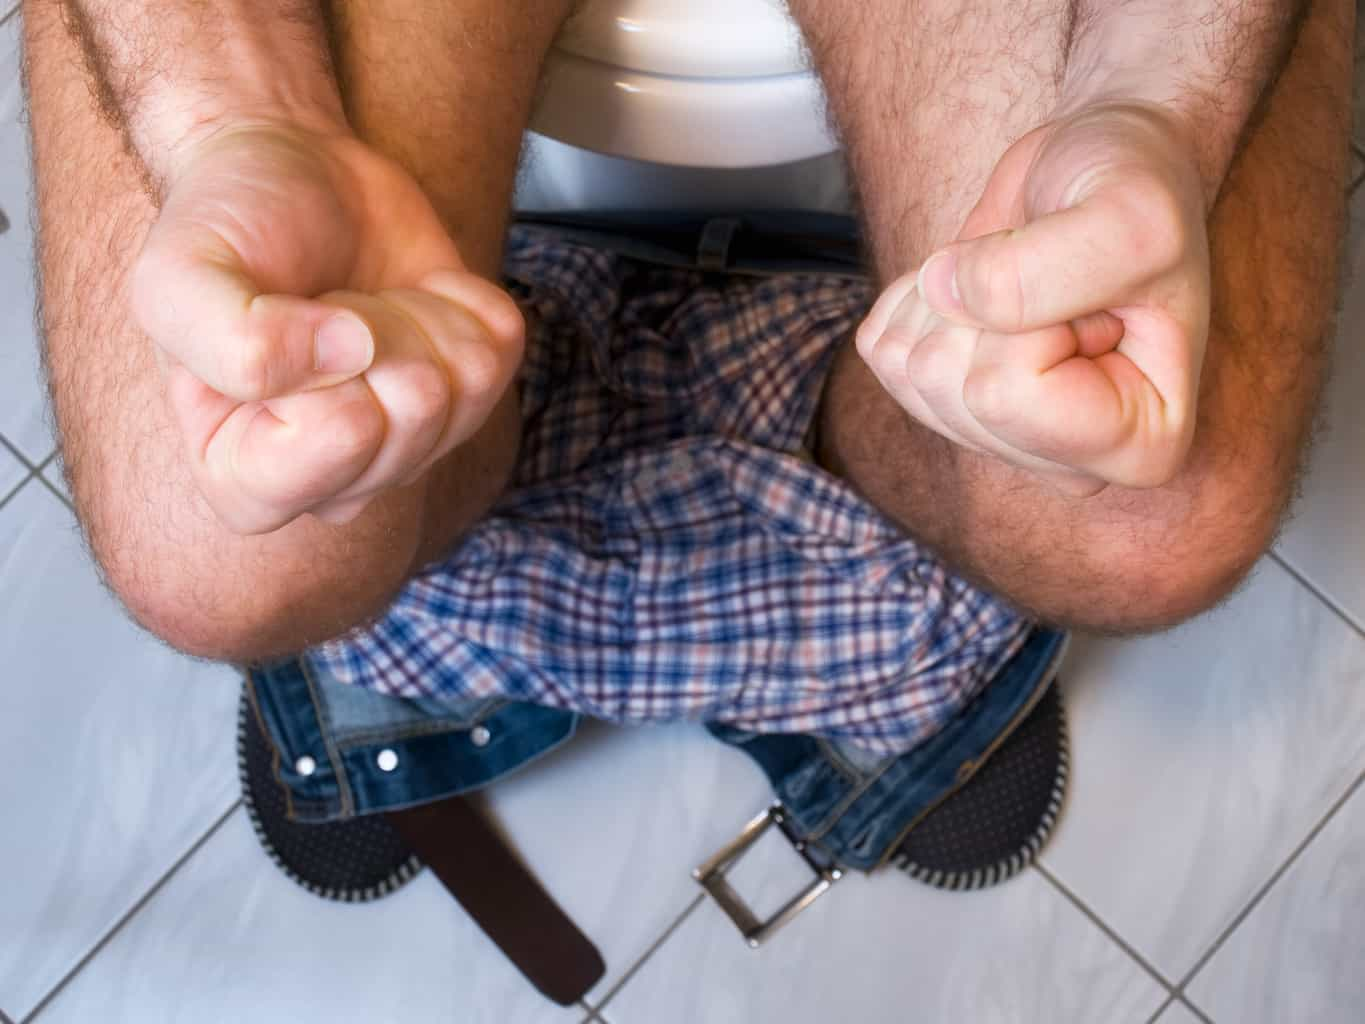 A new way to fix constipation without dangerous pills